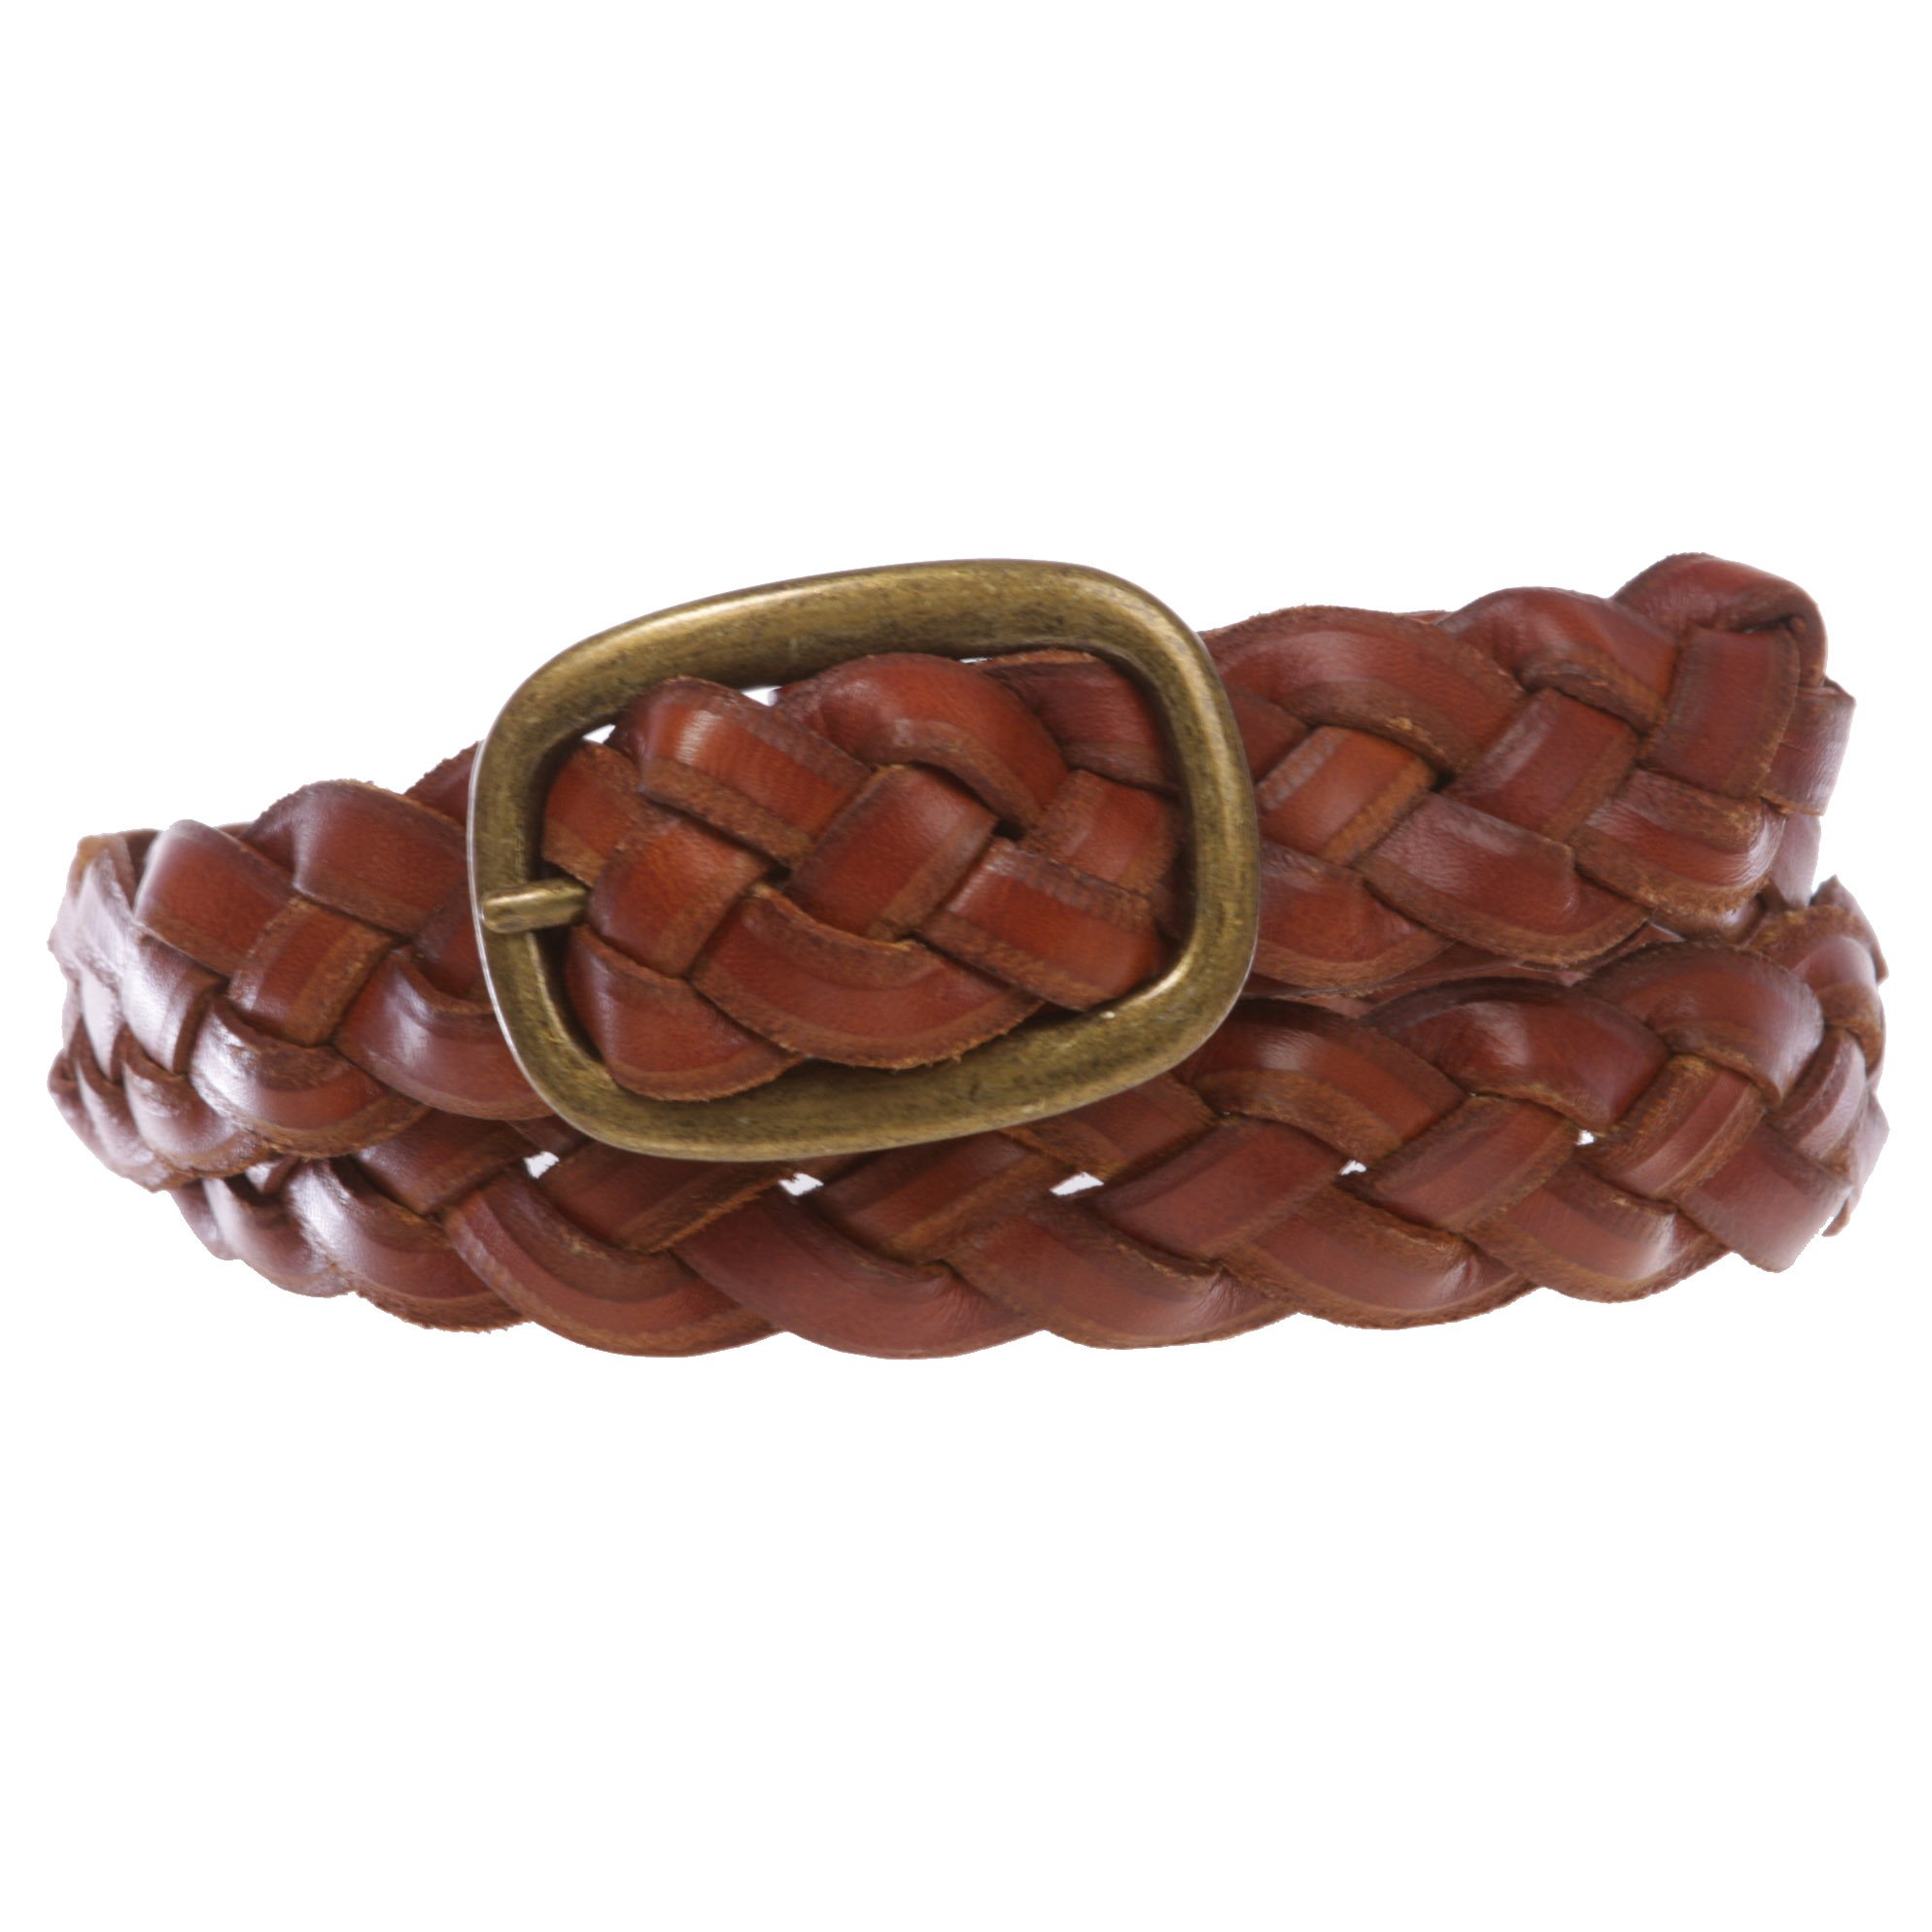 Women's 1 1/4'' Braided Woven Cowhide Top Full Grain Solid Two-Tone 3D Style Vintage Leather Belt, Tan | L/XL - 40''